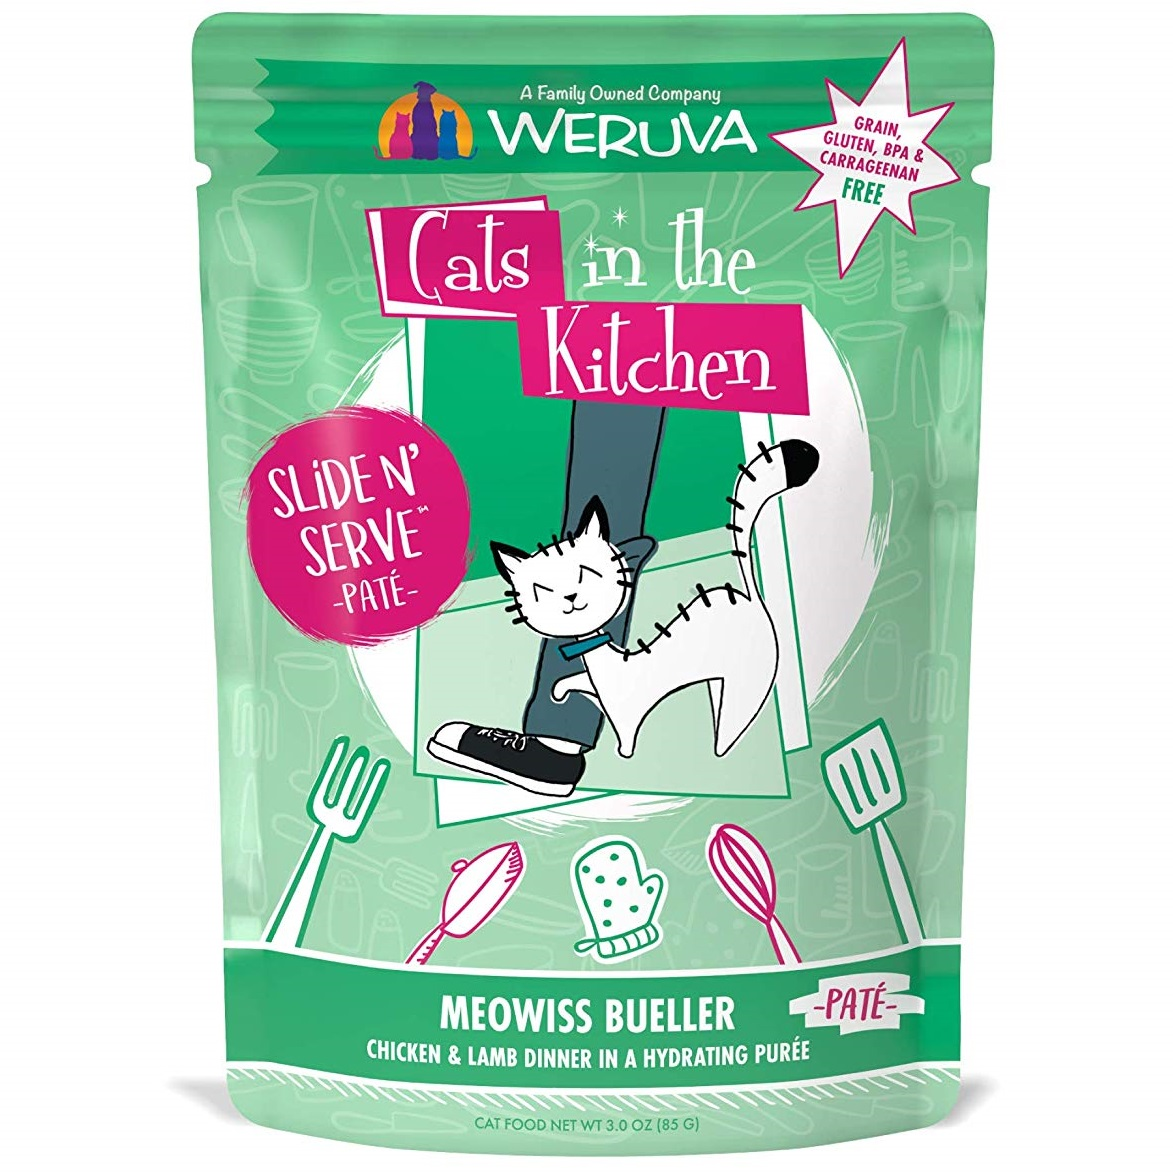 Weruva Cats In The Kitchen Pate Meowiss Bueller Chicken & Lamb Dinner in Puree Grain-Free Wet Cat Food, 3-oz pouch